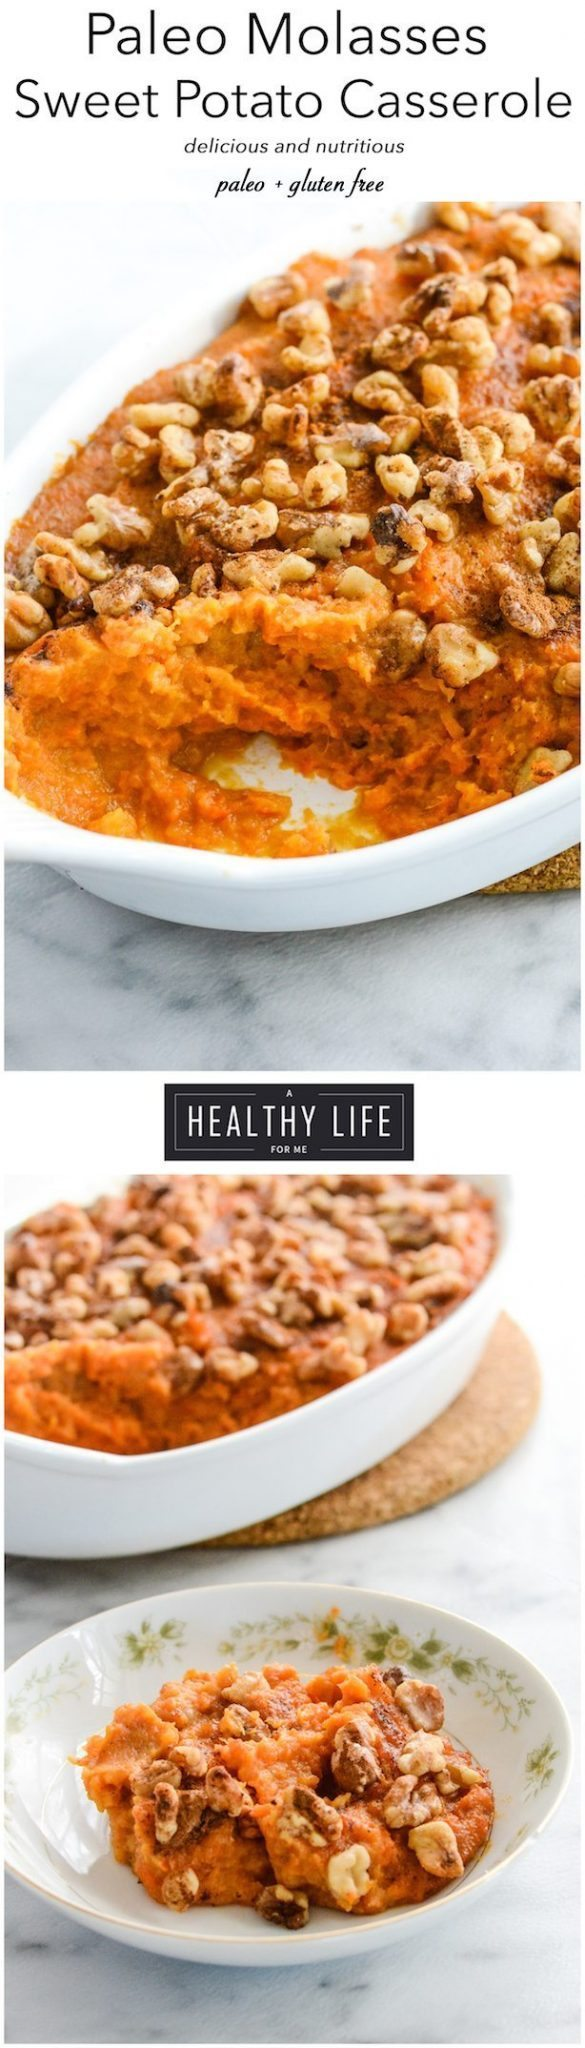 Paleo Molasses Sweet Potato Casserole Recipe Gluten Free | ahealthylifeforme.com